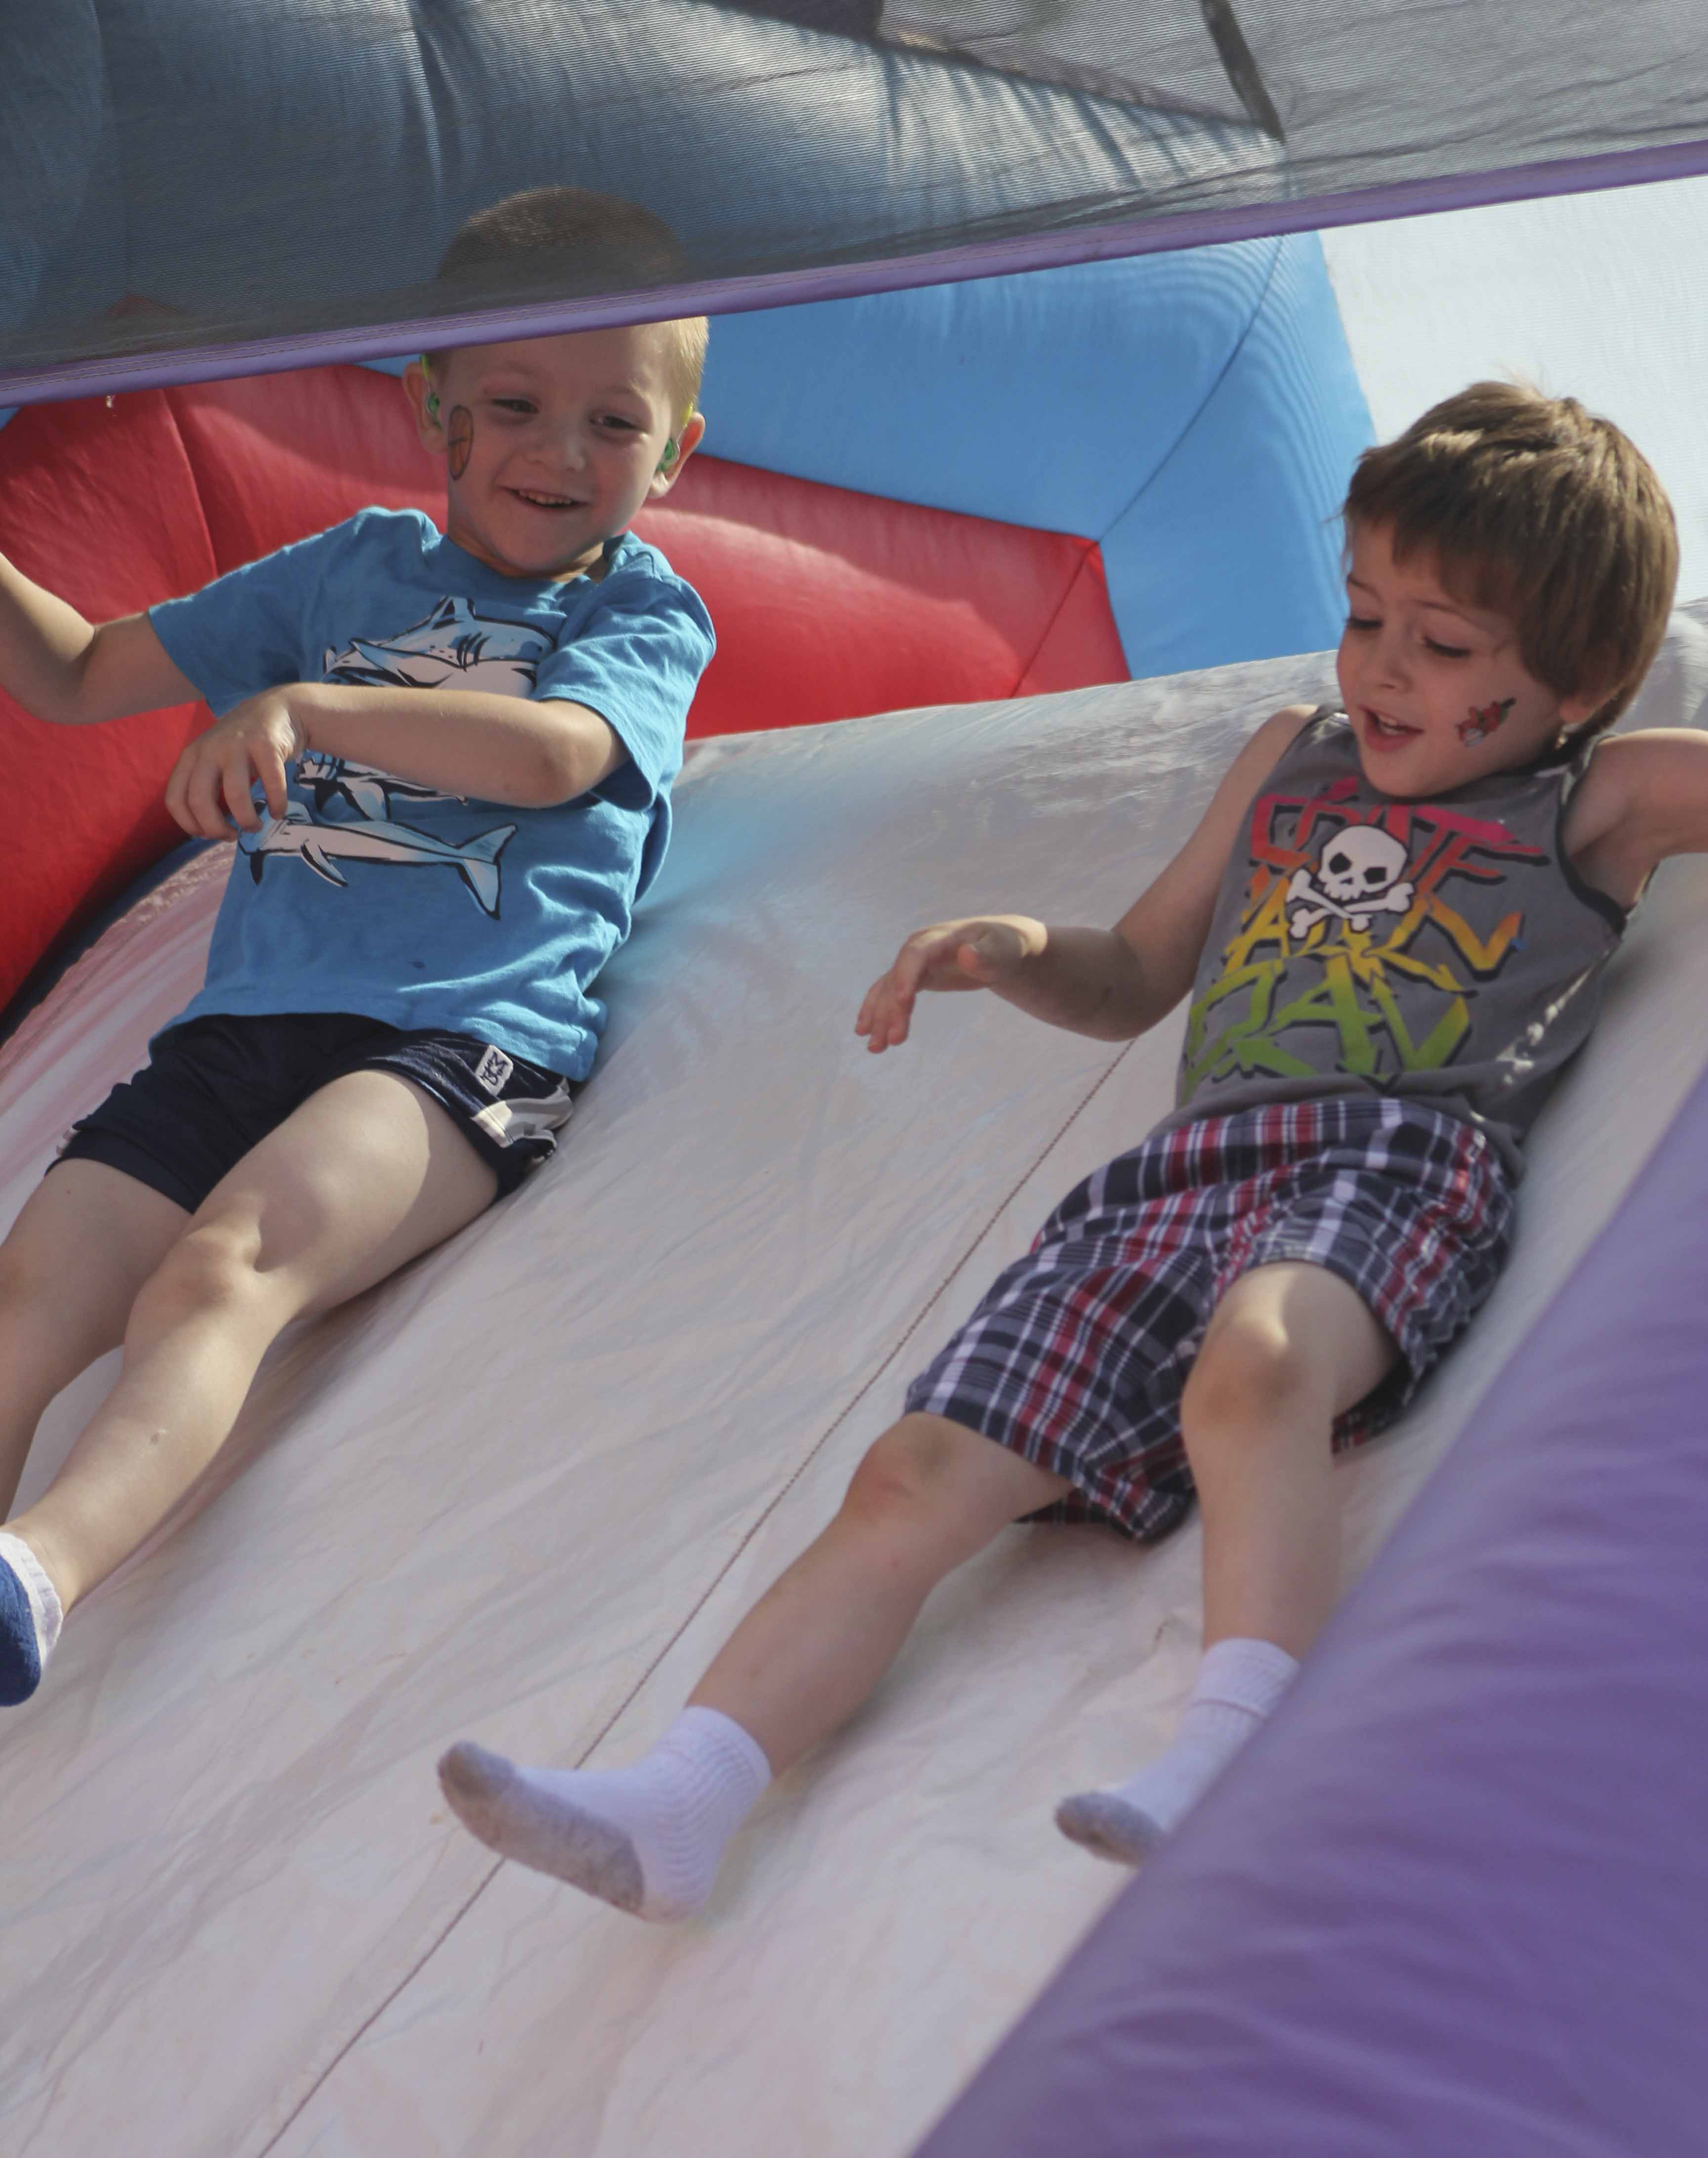 Monticello's elementary schools held their annual end of the school year Fun Day May 24. At Shannon, preschoolers Caden Bowers (left) and Reaver Mettler enjoy a trip down the inflatable slide. (Photos by Pete Temple)